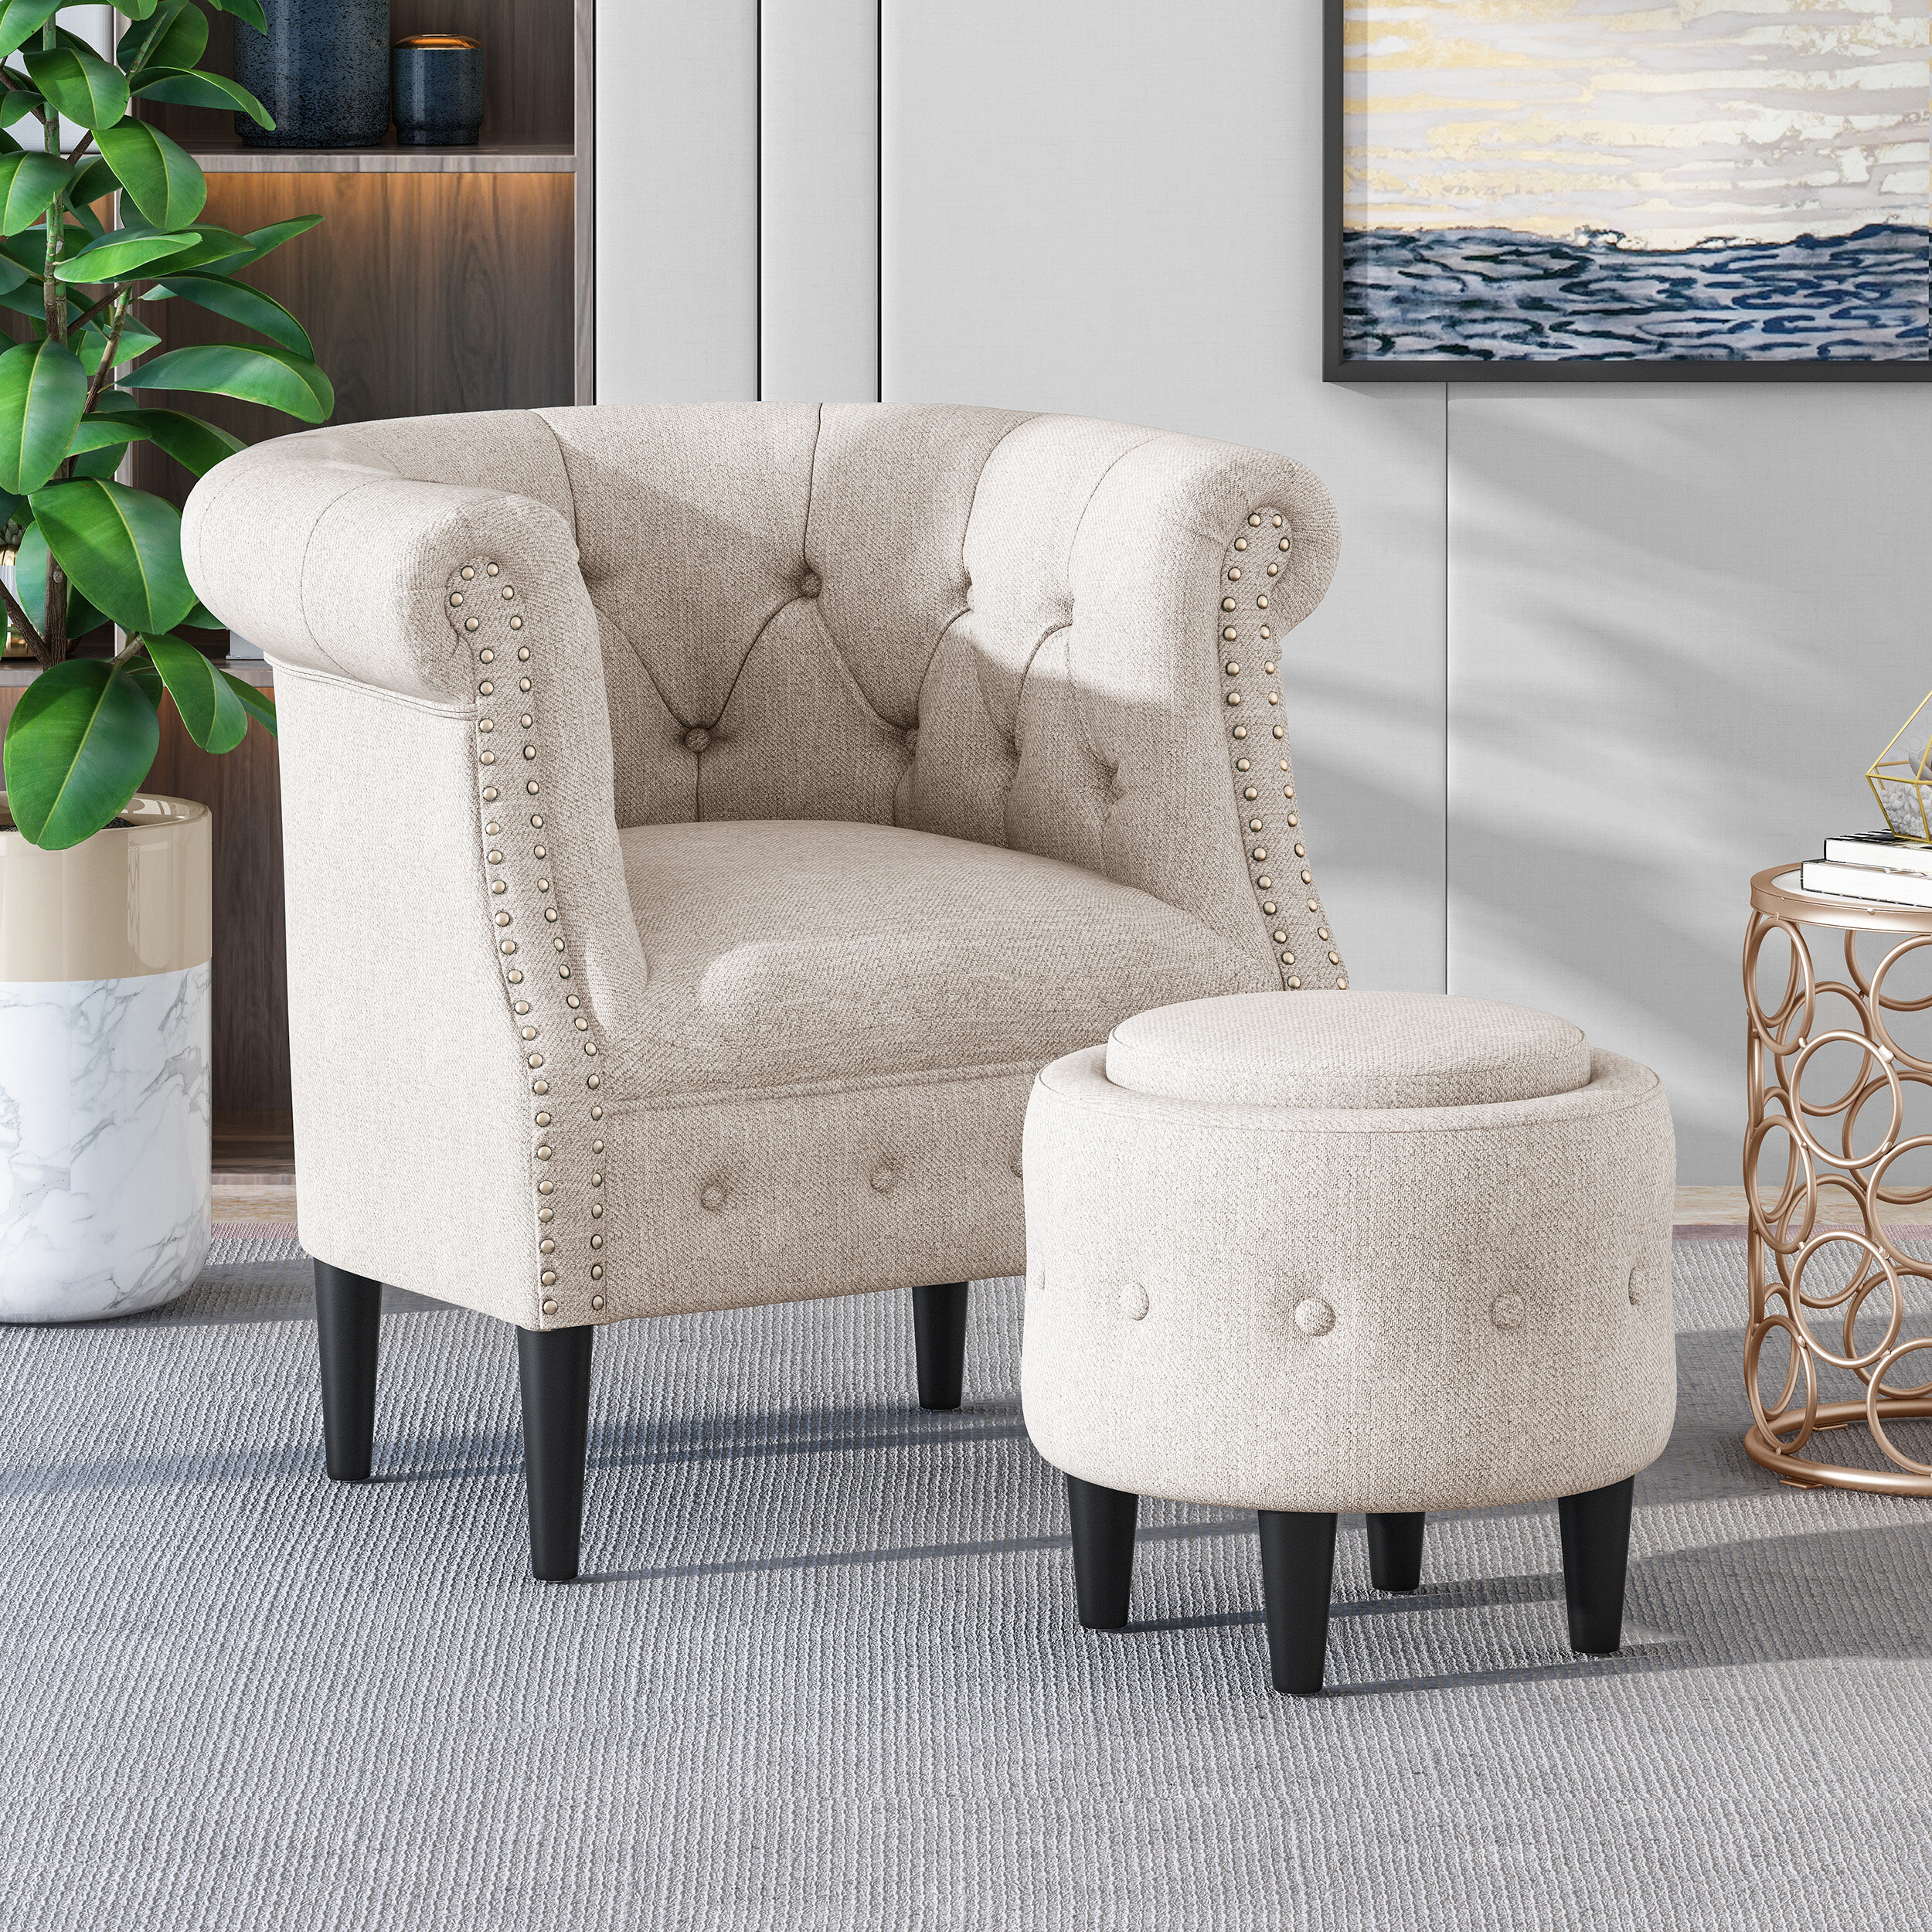 Rosdorf Park Accent Chairs You'Ll Love In 2021 | Wayfair Pertaining To Riverside Drive Barrel Chair And Ottoman Sets (View 9 of 15)